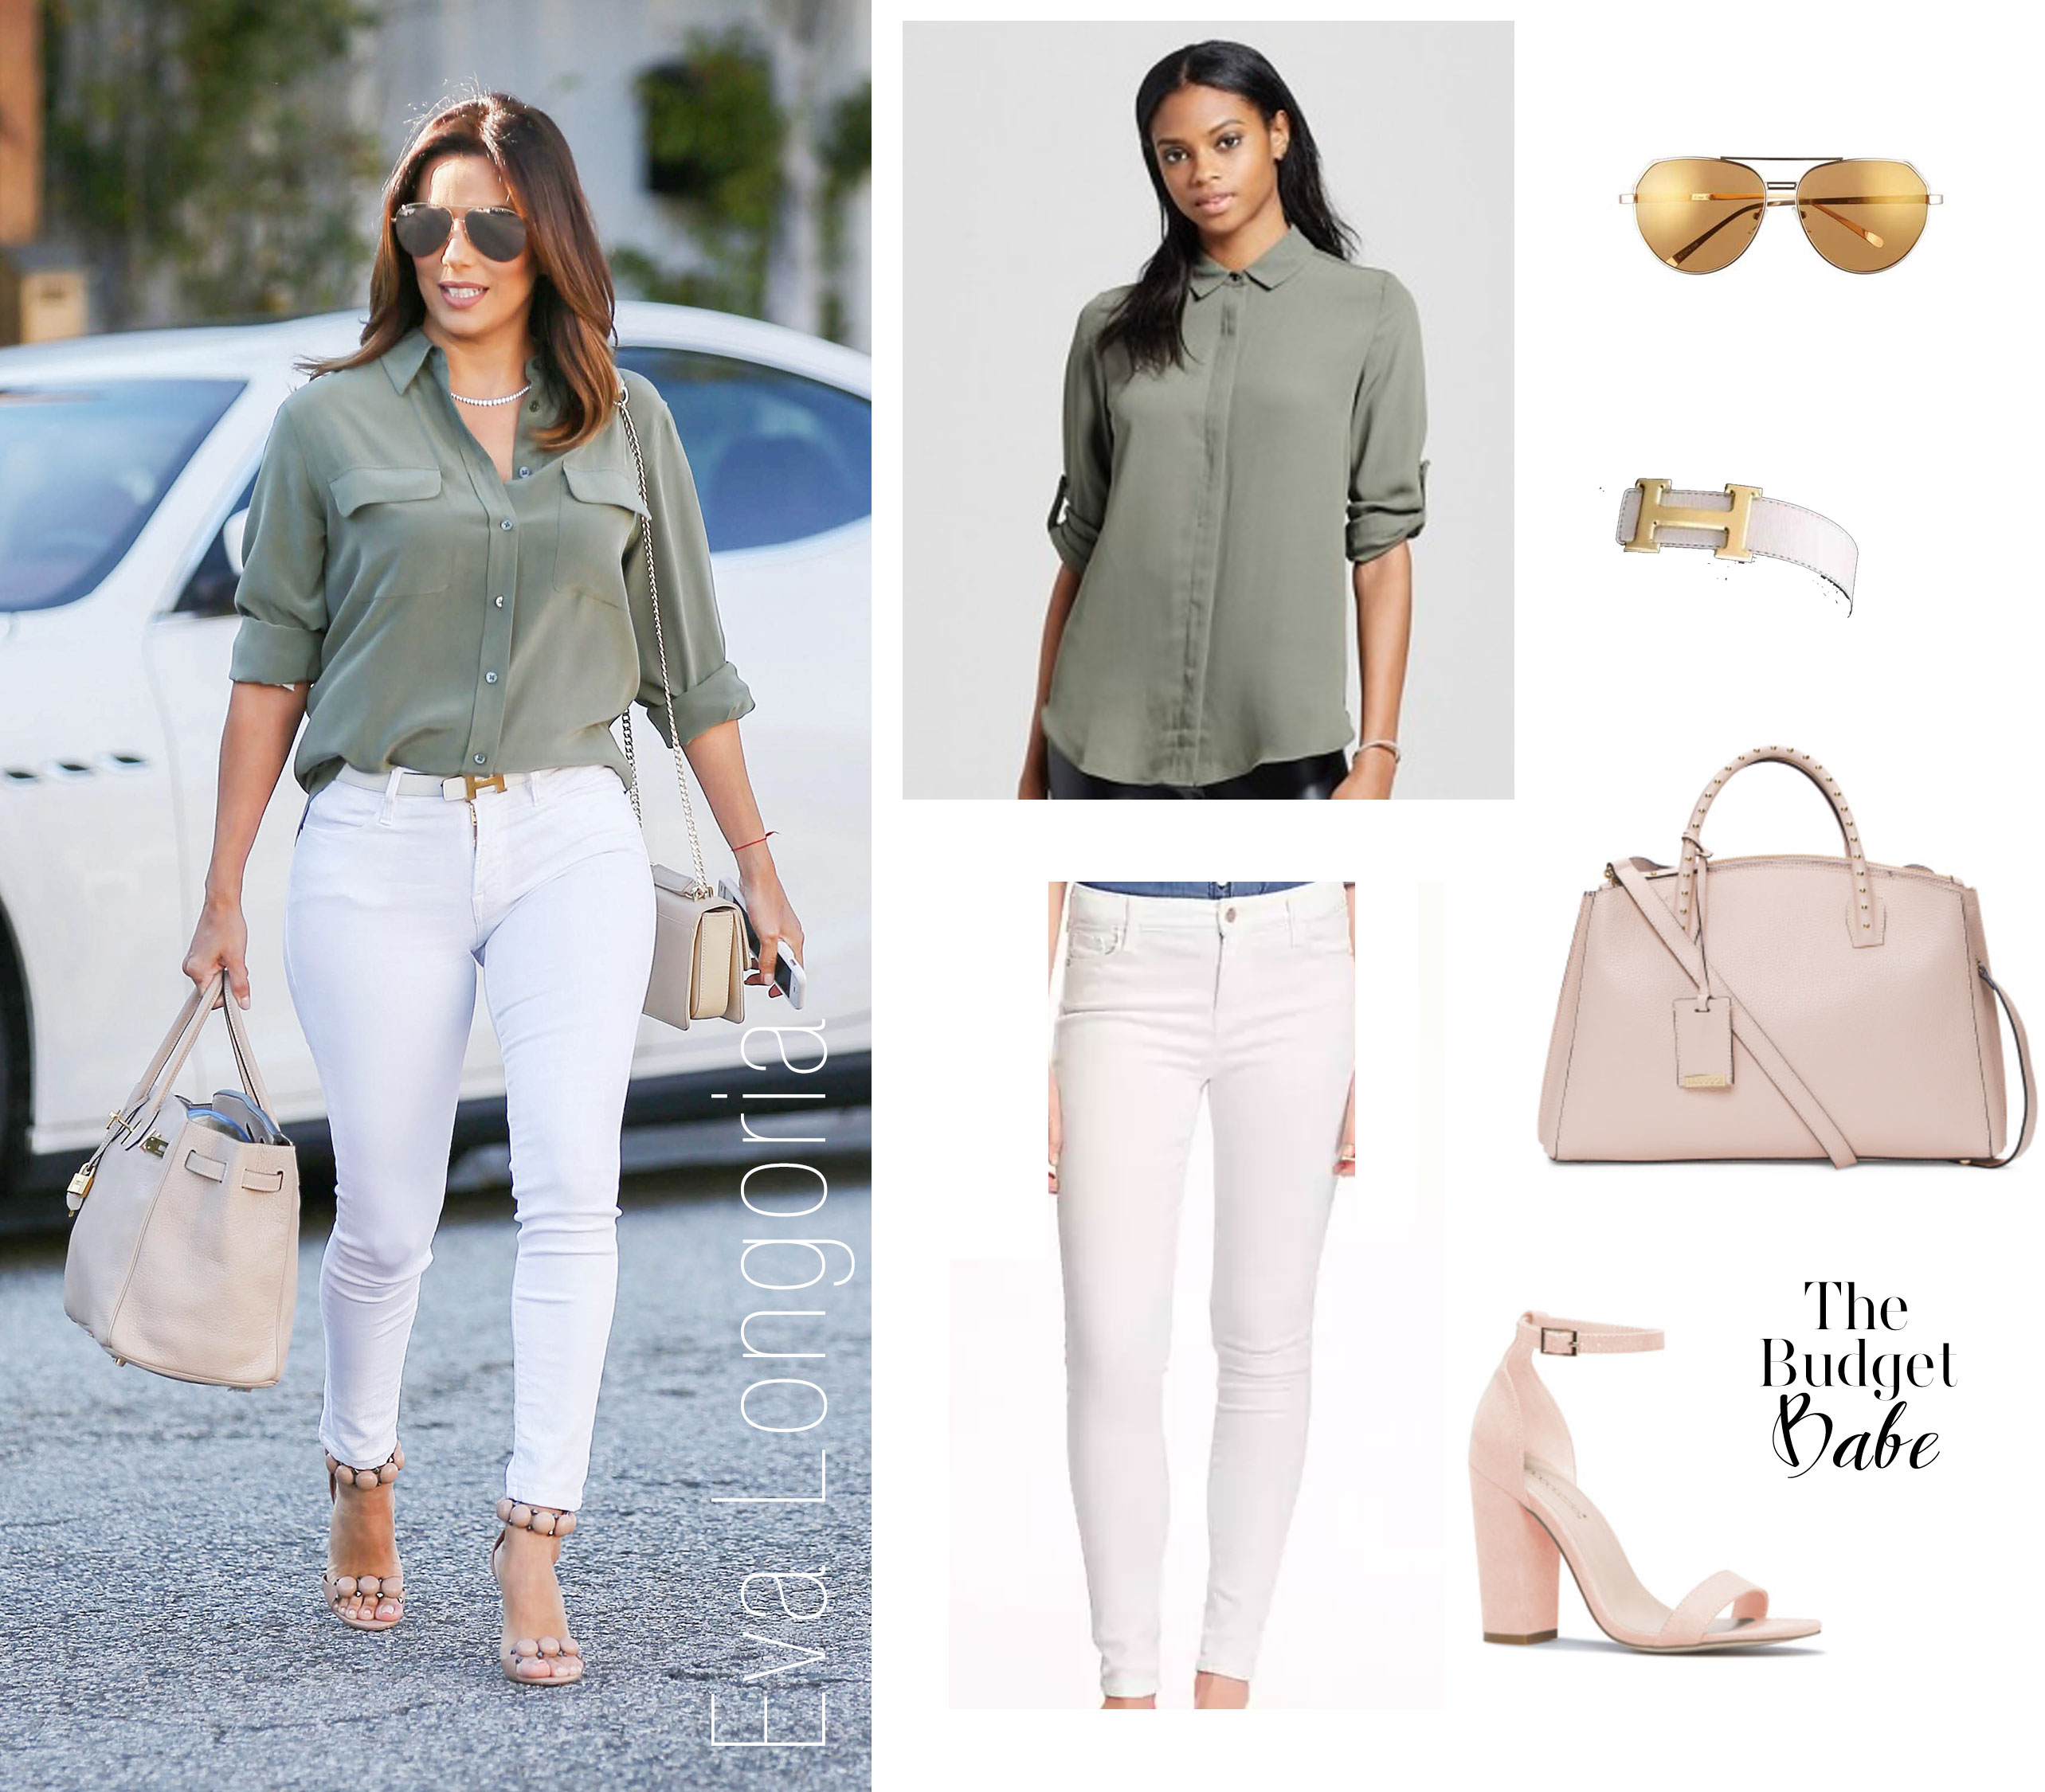 Eva Longoria looks chic in white denim and an olive blouse.